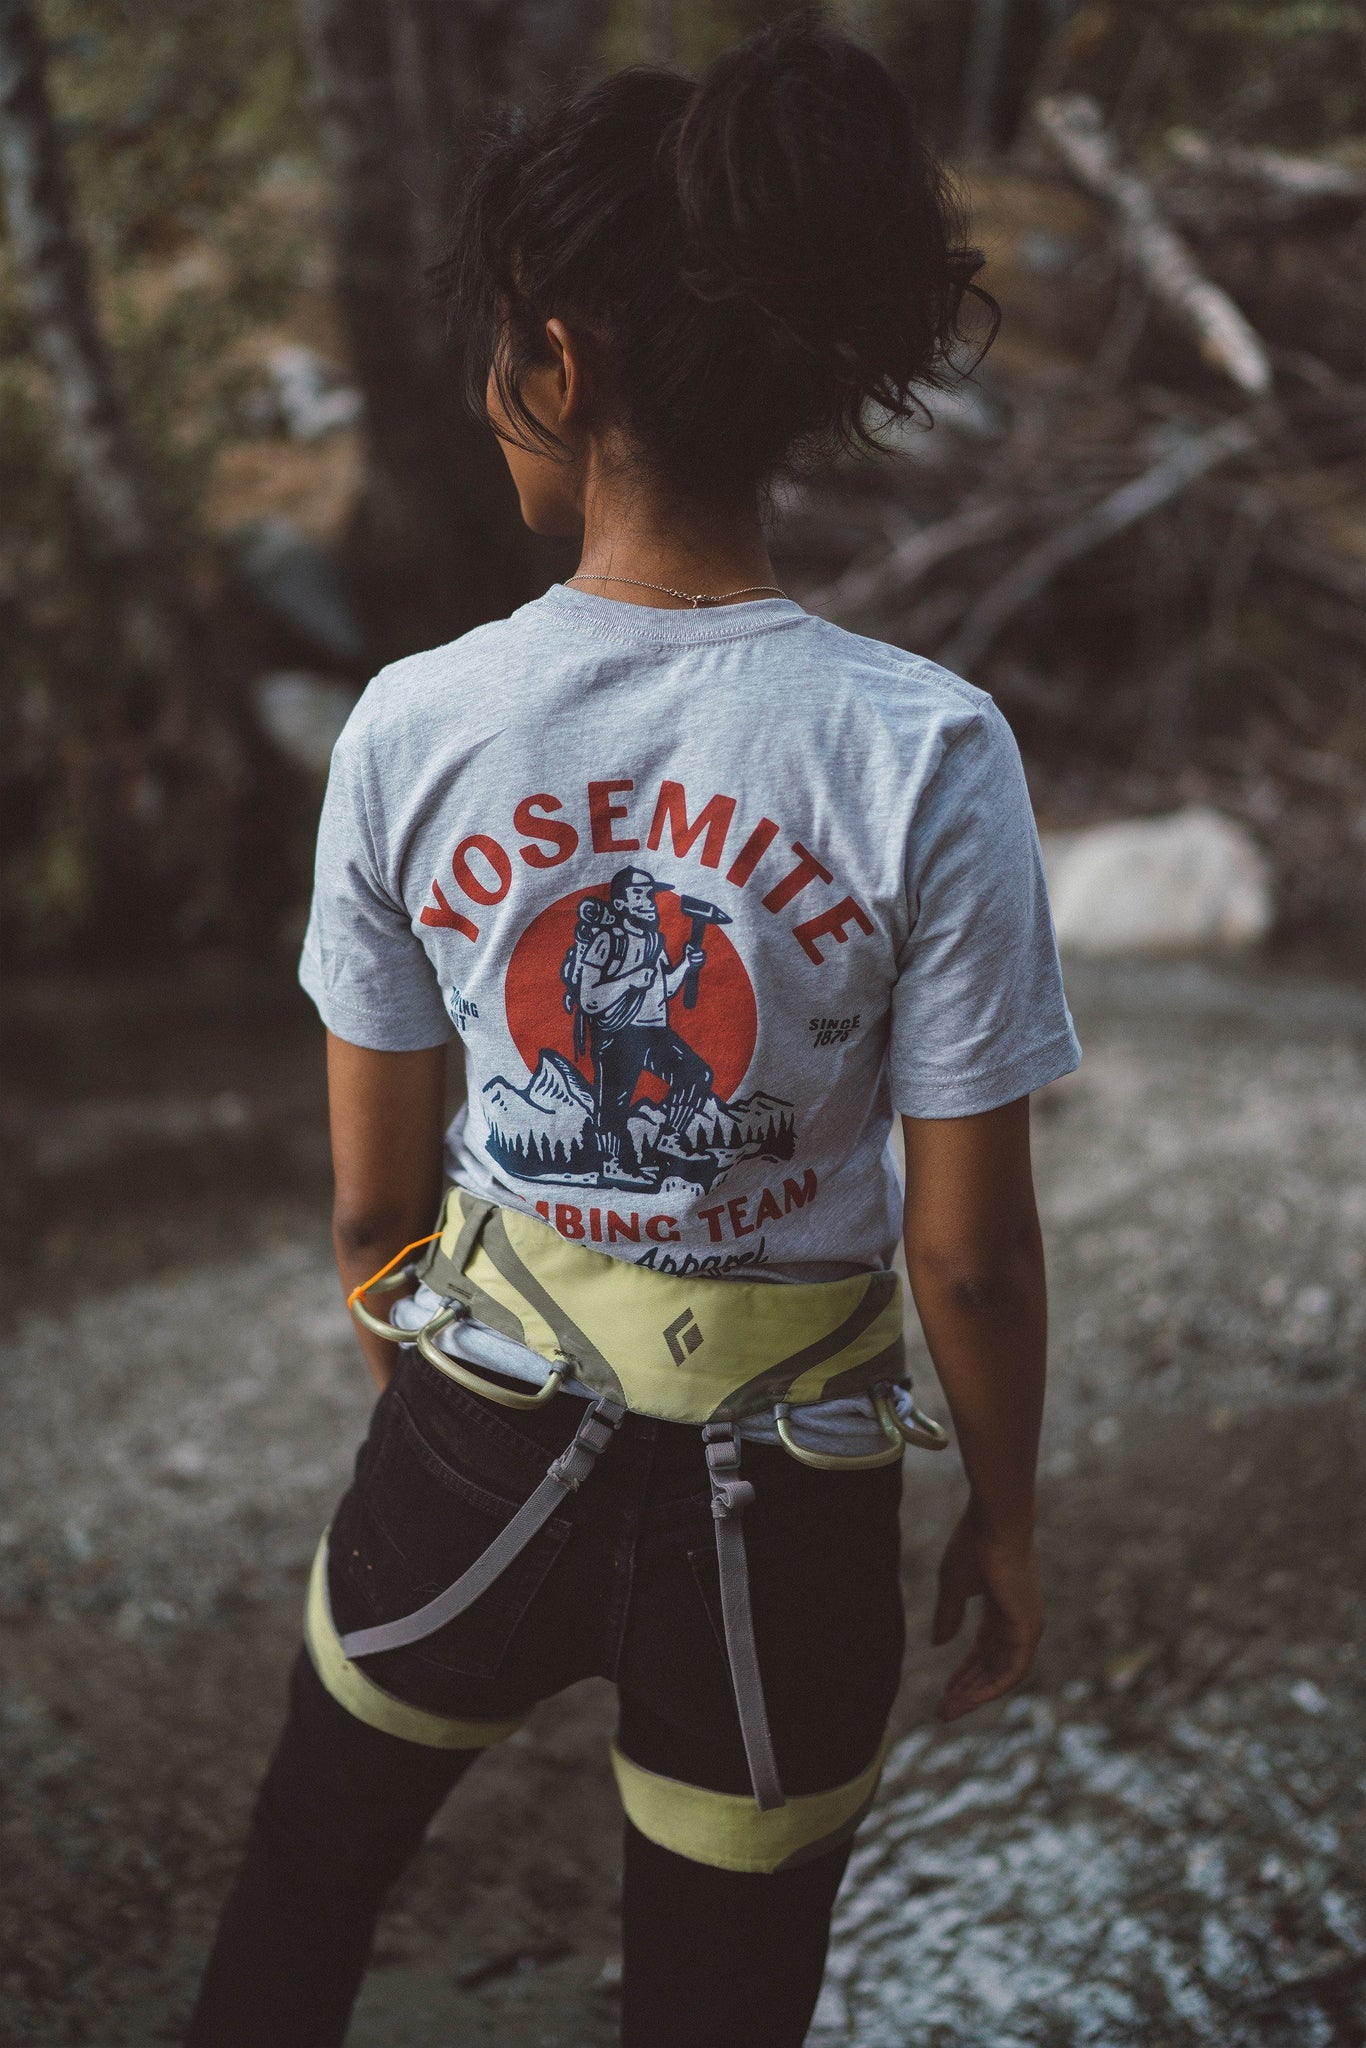 The Parks Yosemite Climbing Team Unisex Tee - The Parks Apparel